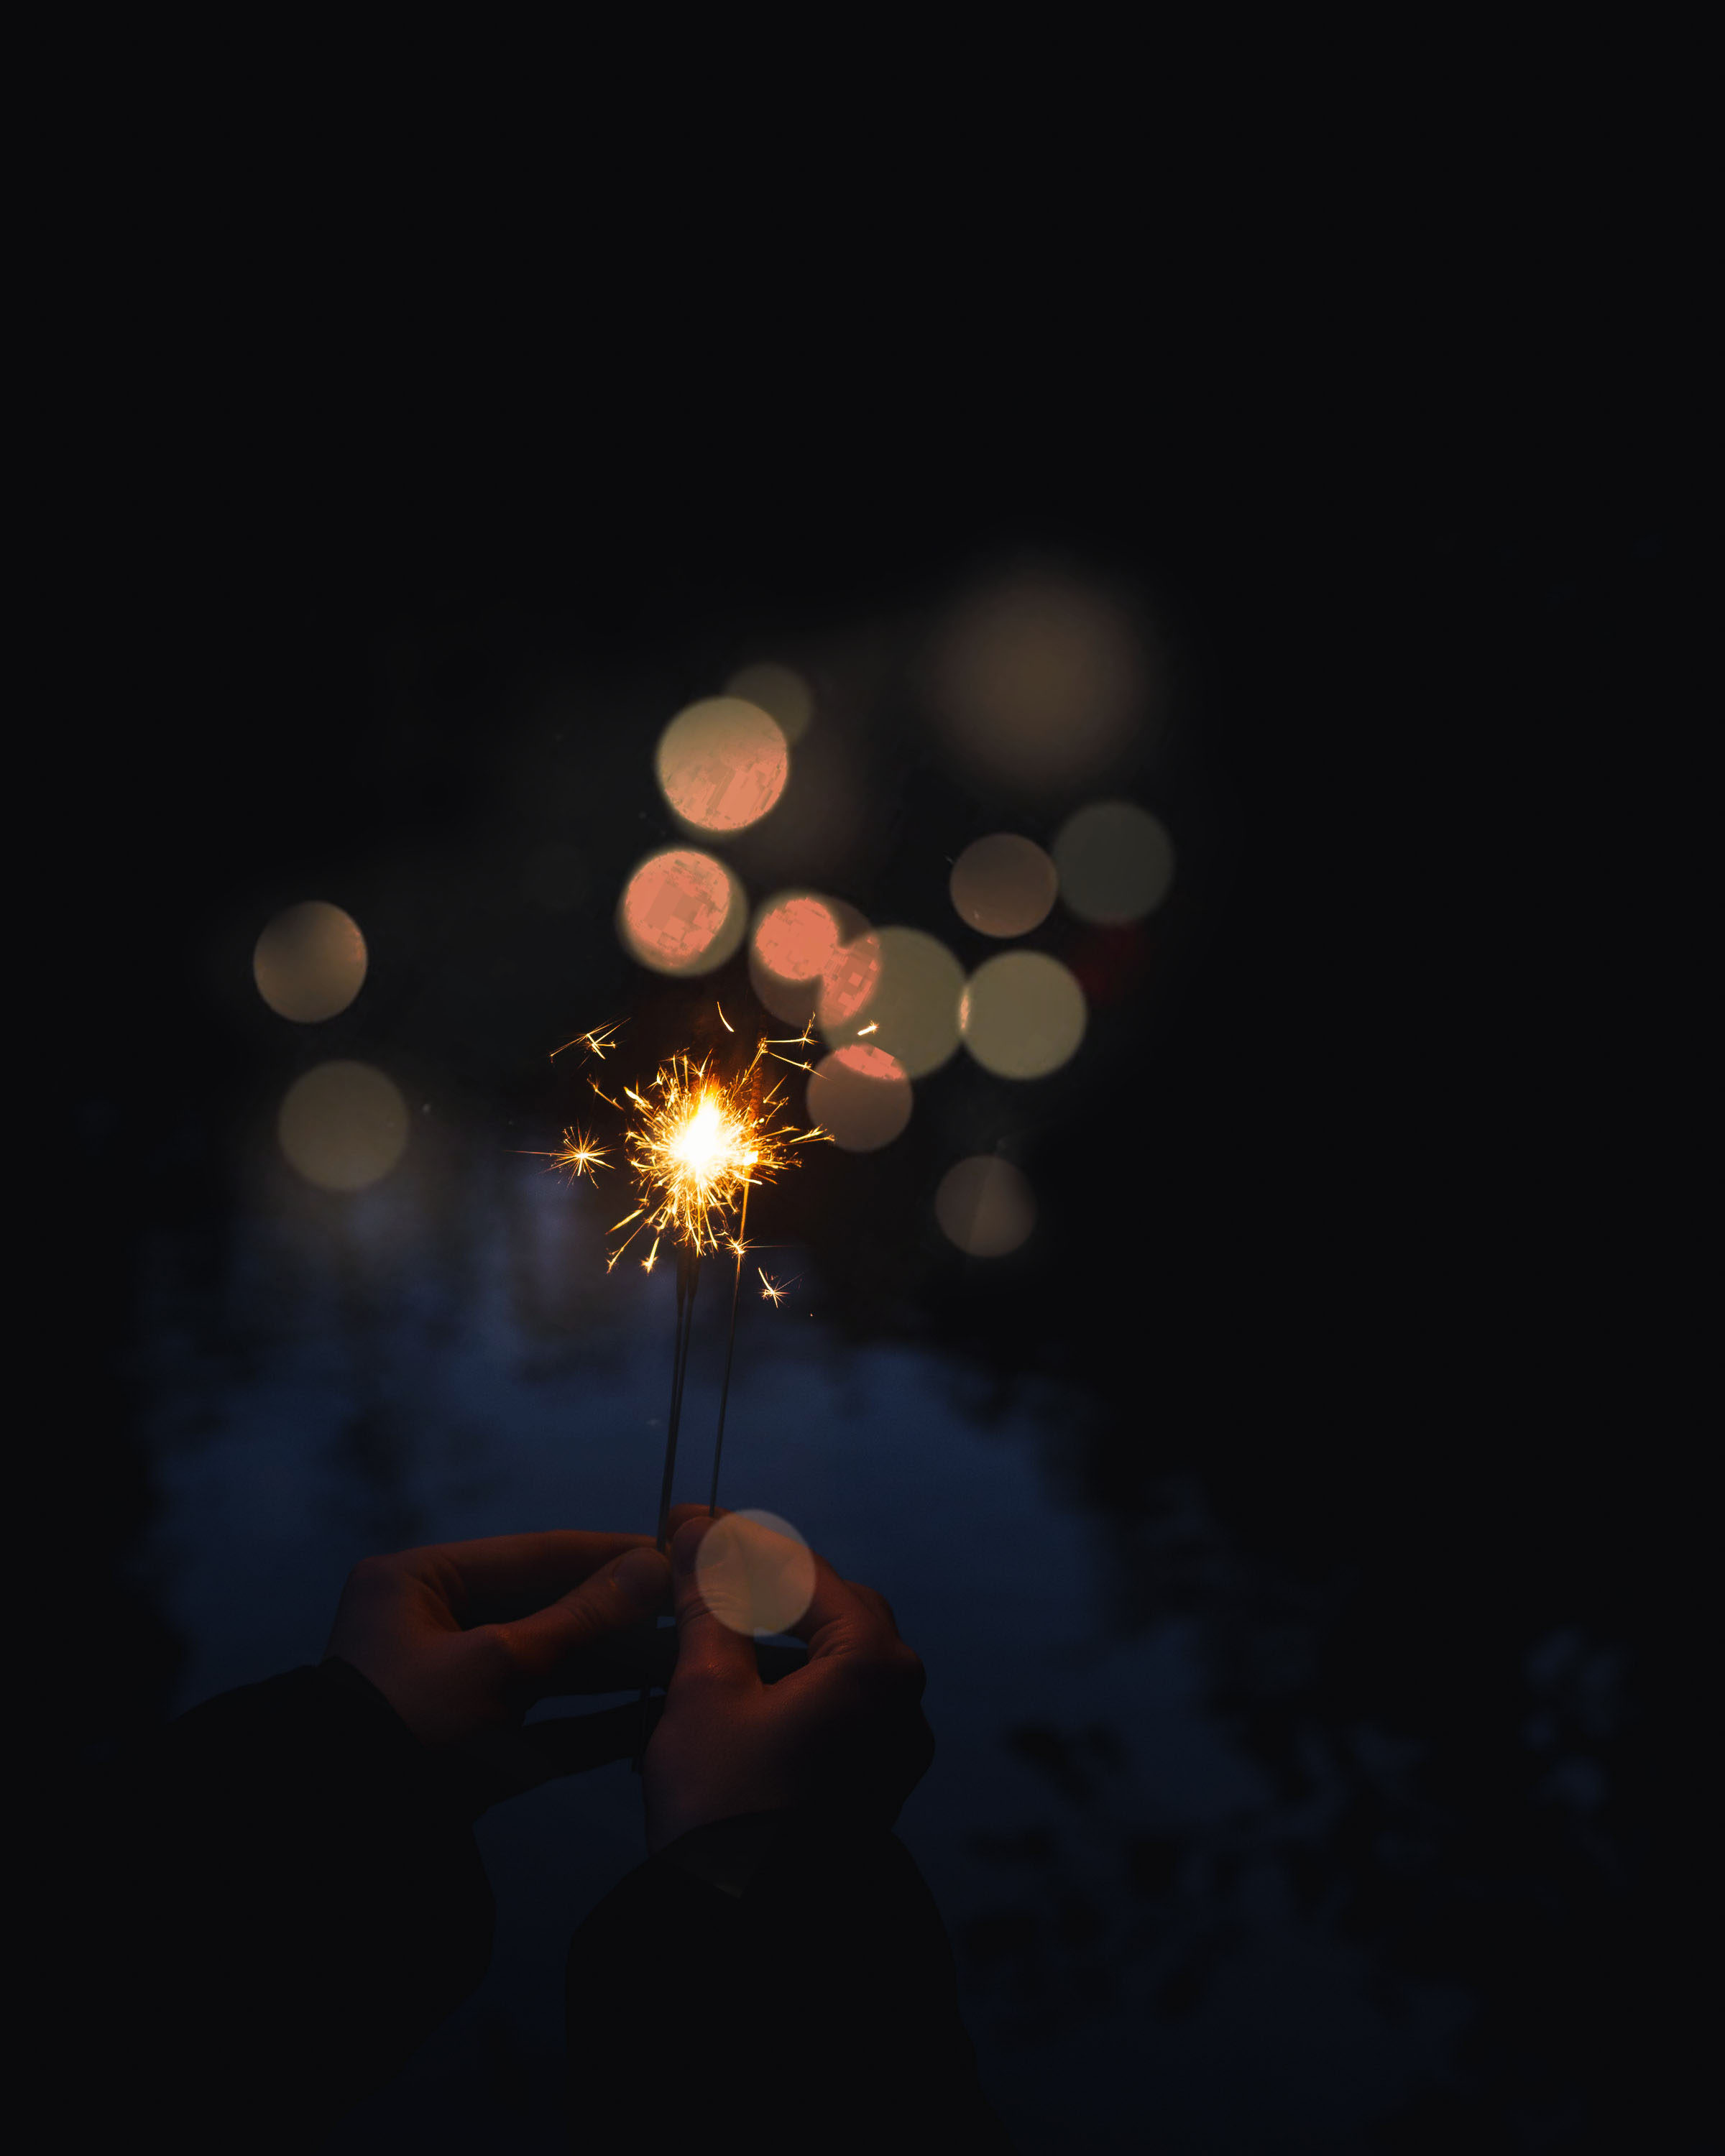 Seasonal rituals November sparkler bokeh